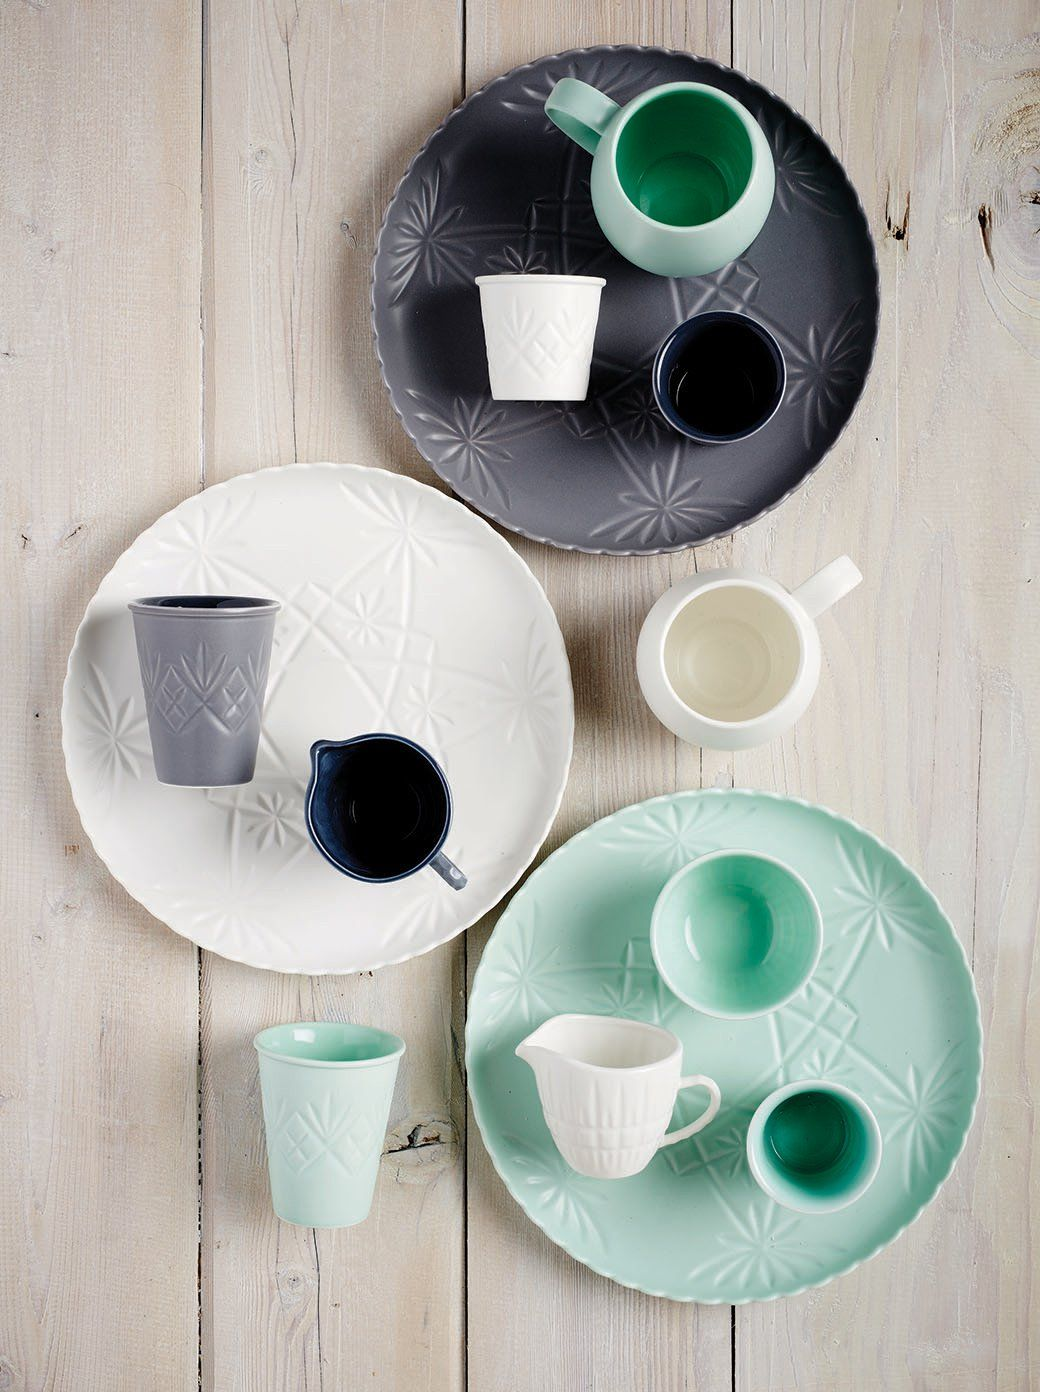 Design Küchenutensilien Ceramics By Robert Gordon Australia Diy Ceramics